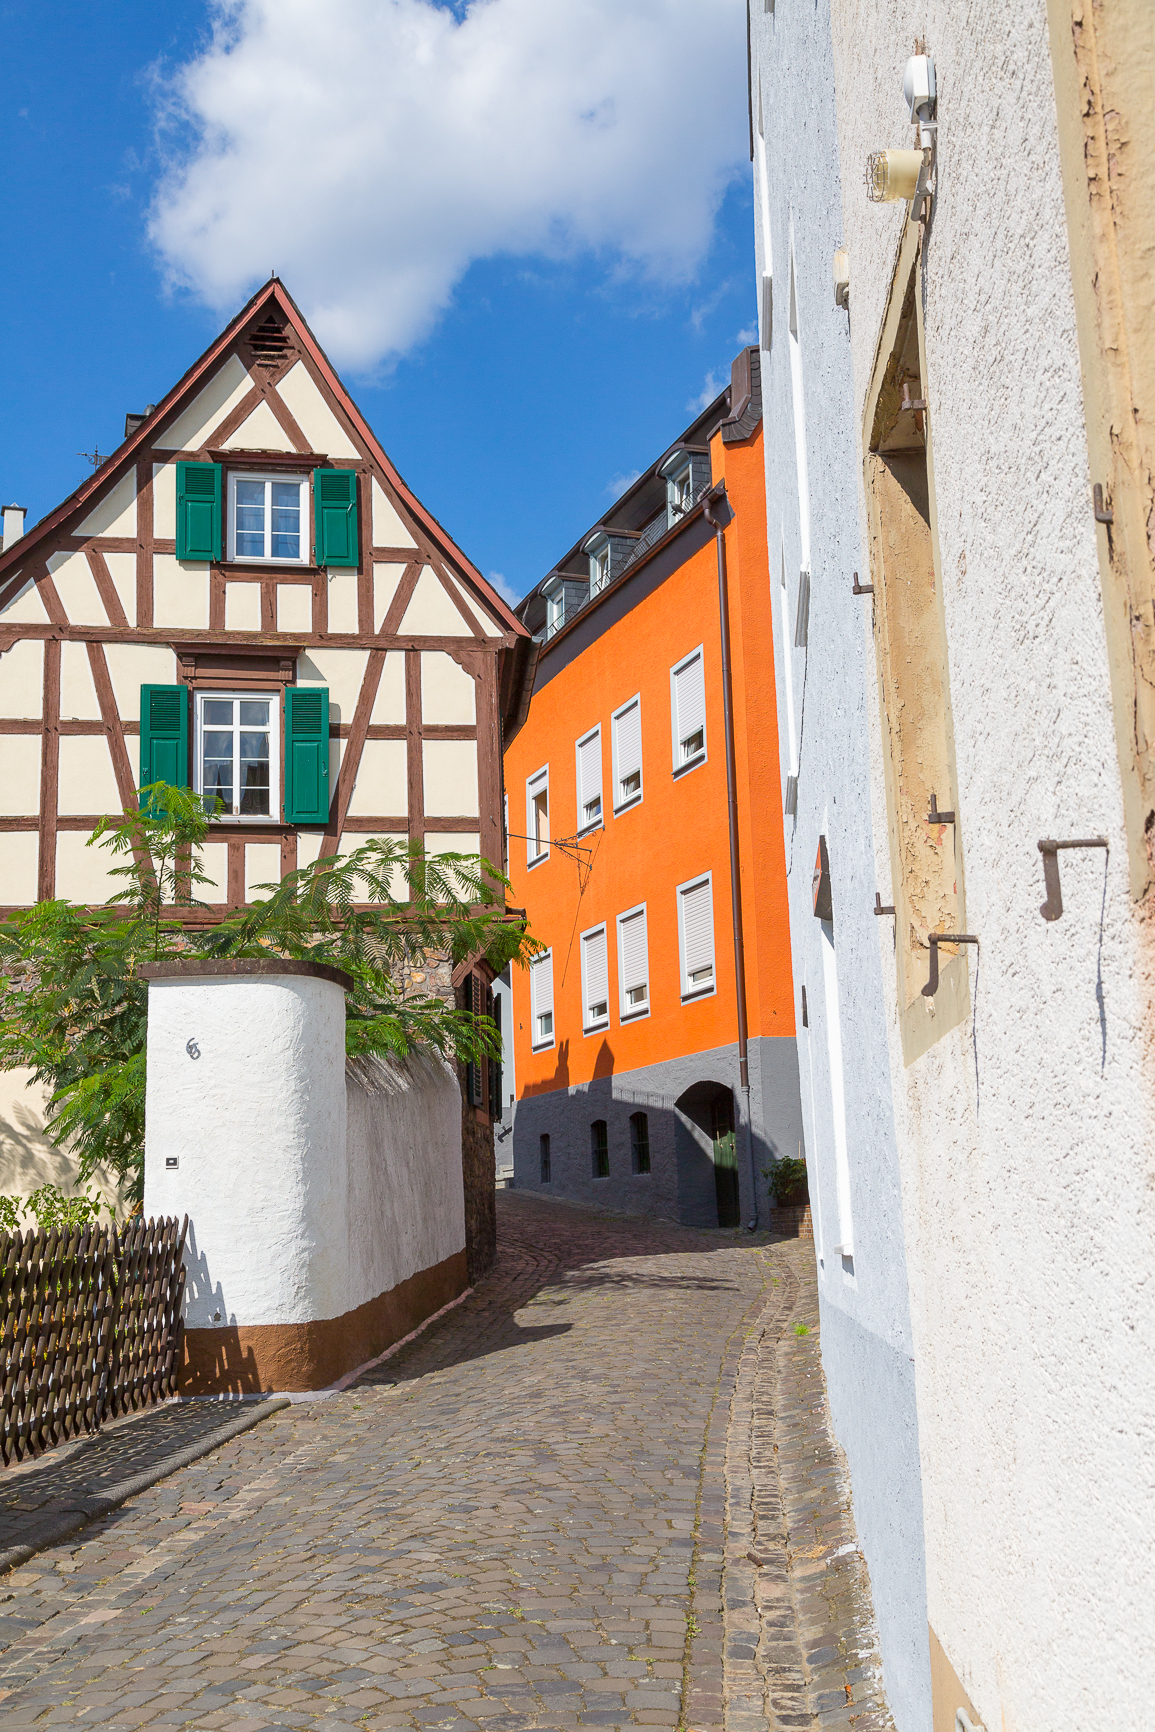 rudensheim-14-of-24